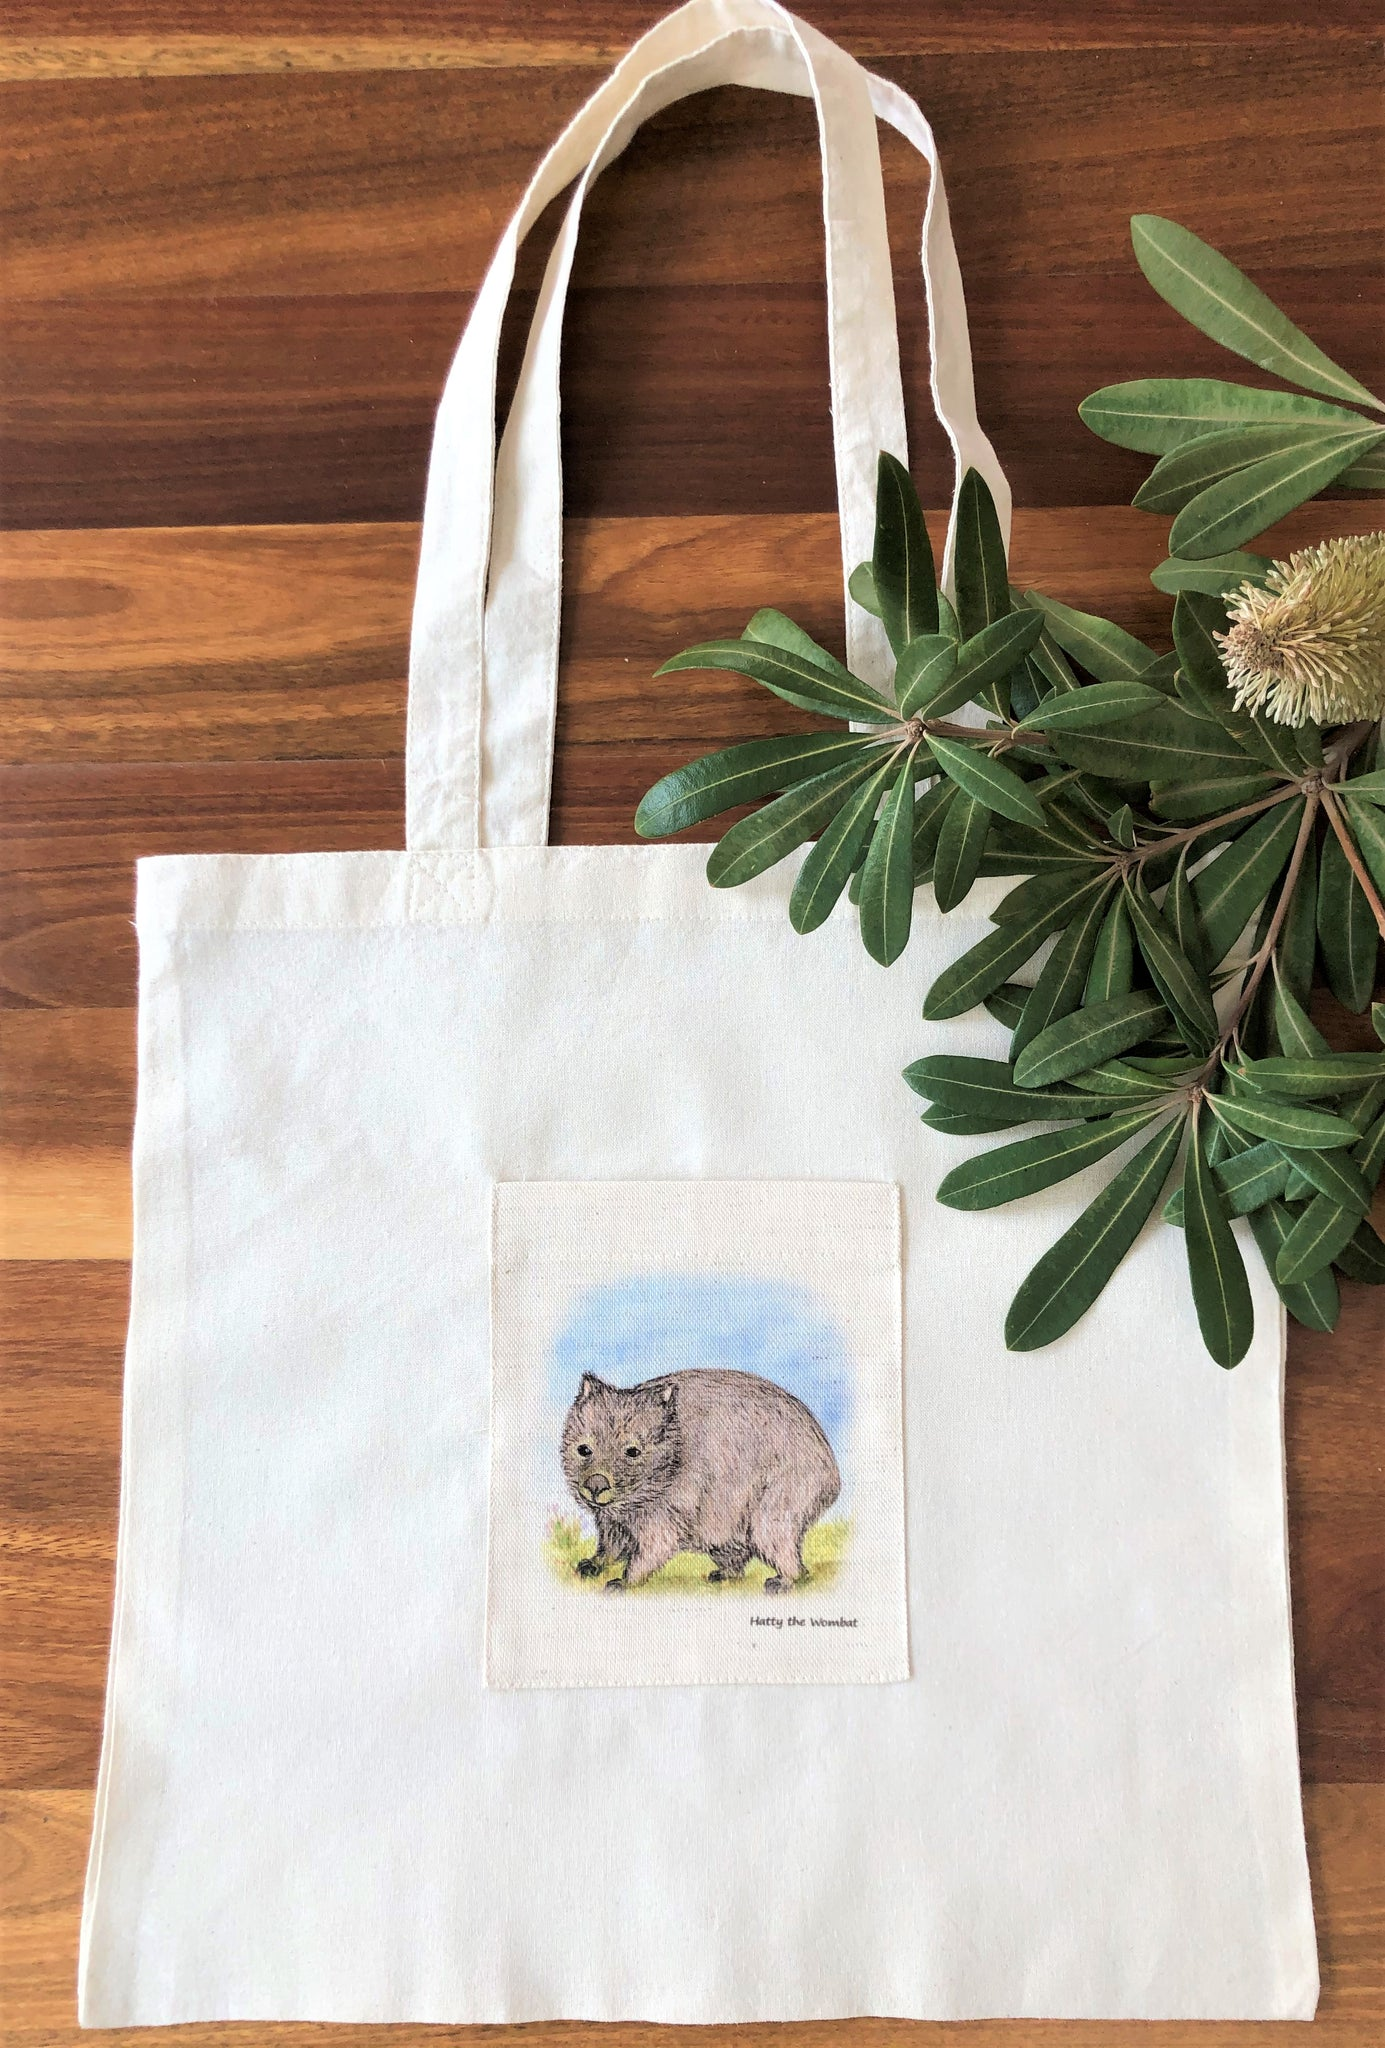 Tote Bag - Hatty the Wombat